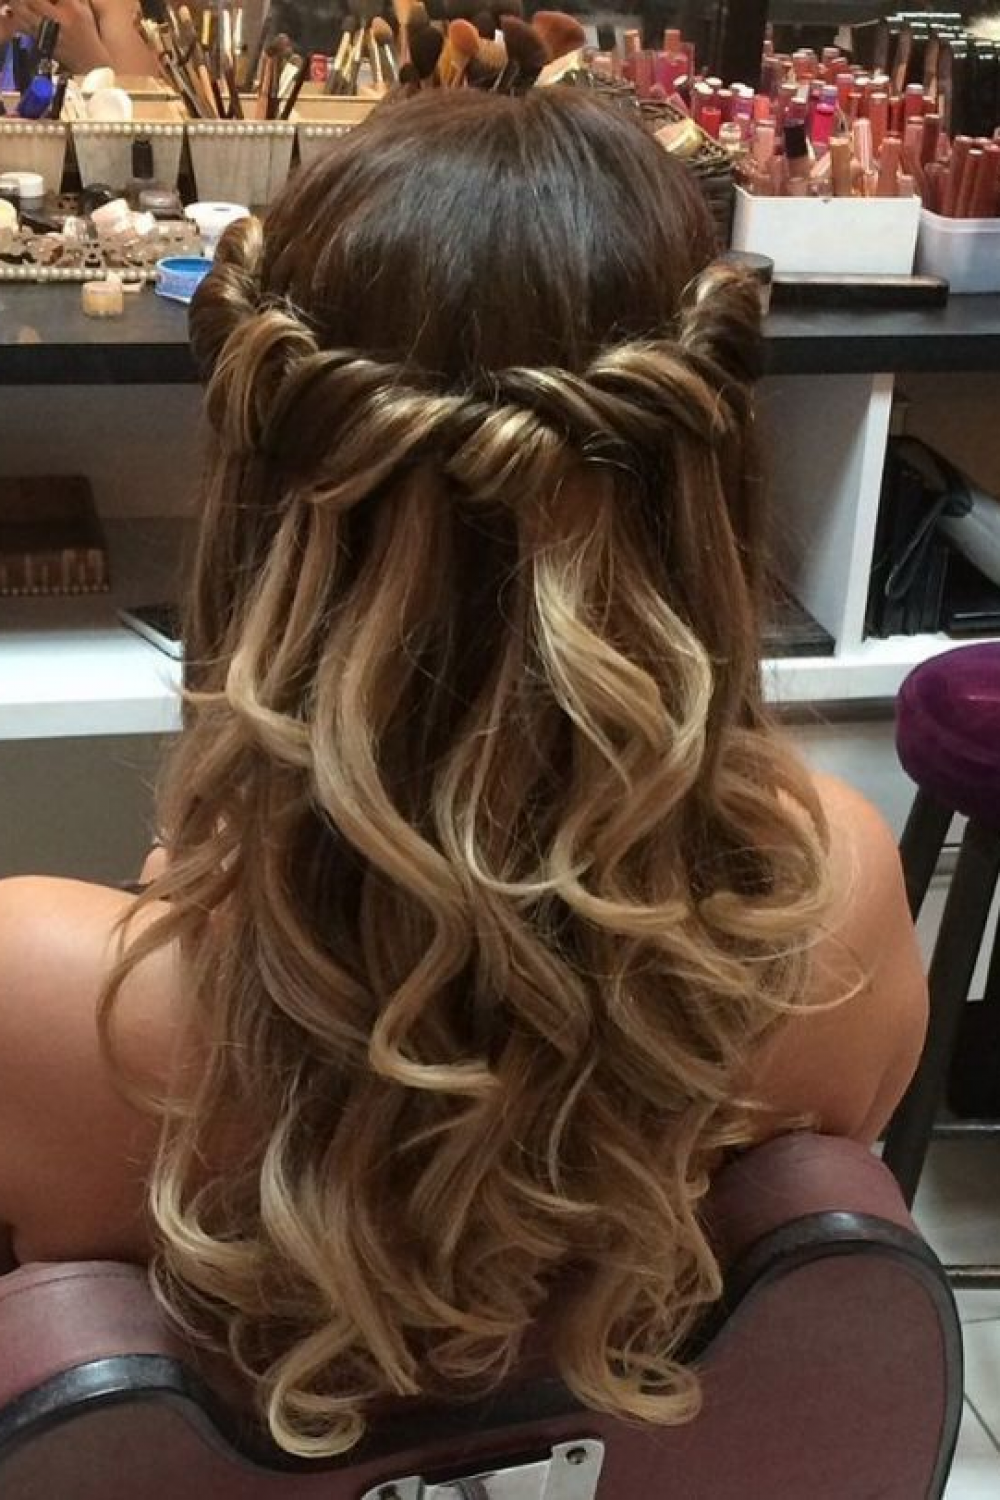 12 Cute Prom Hair Ideas You Will Fall In Love #hair #Prom_brunette